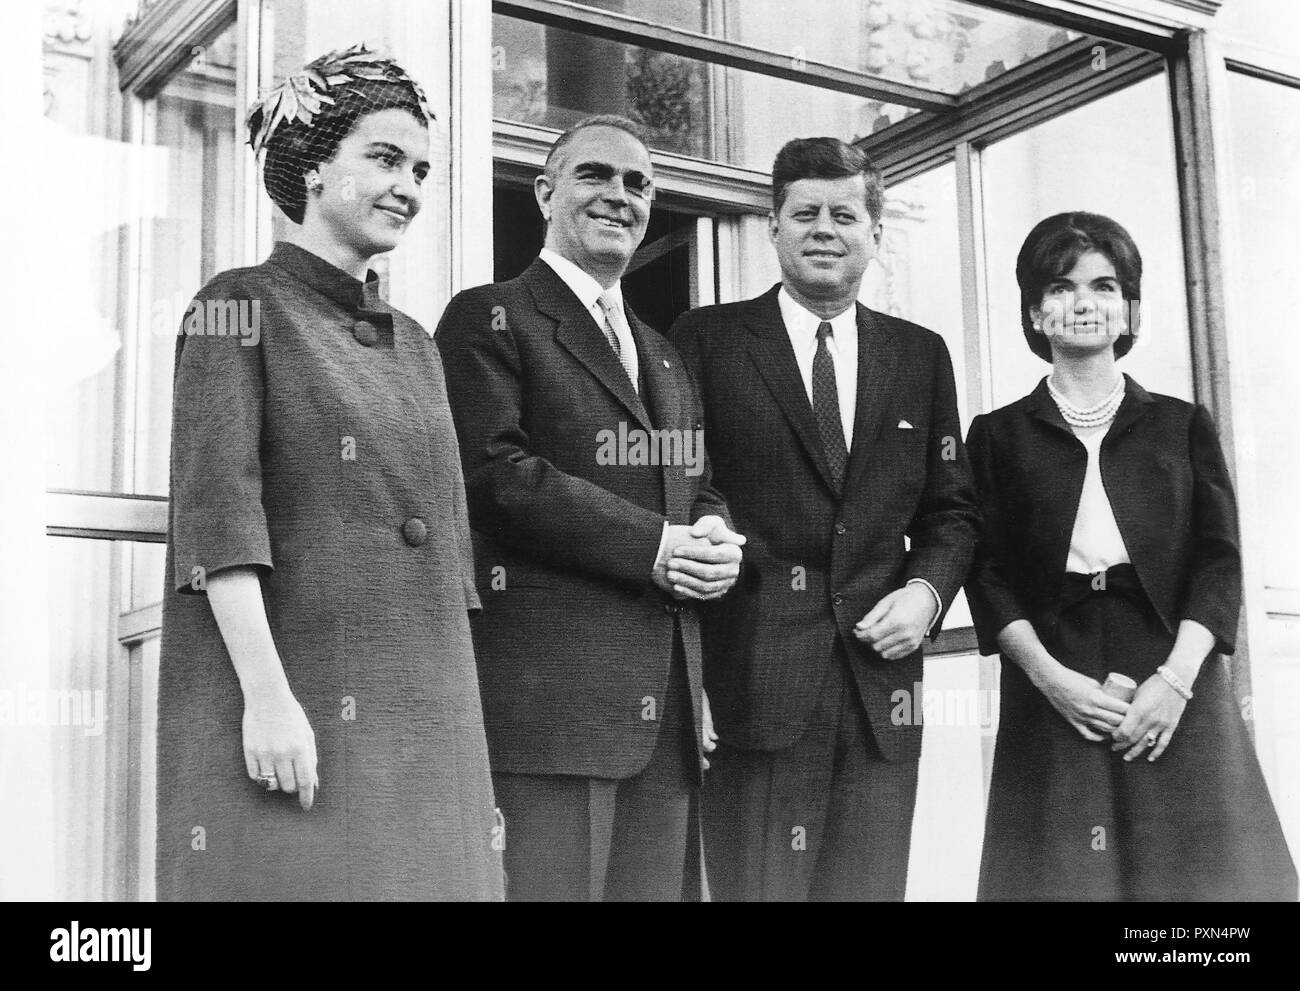 President John F. Kennedy and First Lady Jacqueline Kennedy with Prime Minister of Greece Konstantine Karamanlis and Amalia Karamanlis, entrance of the White House, Washington, D.C. - Stock Image